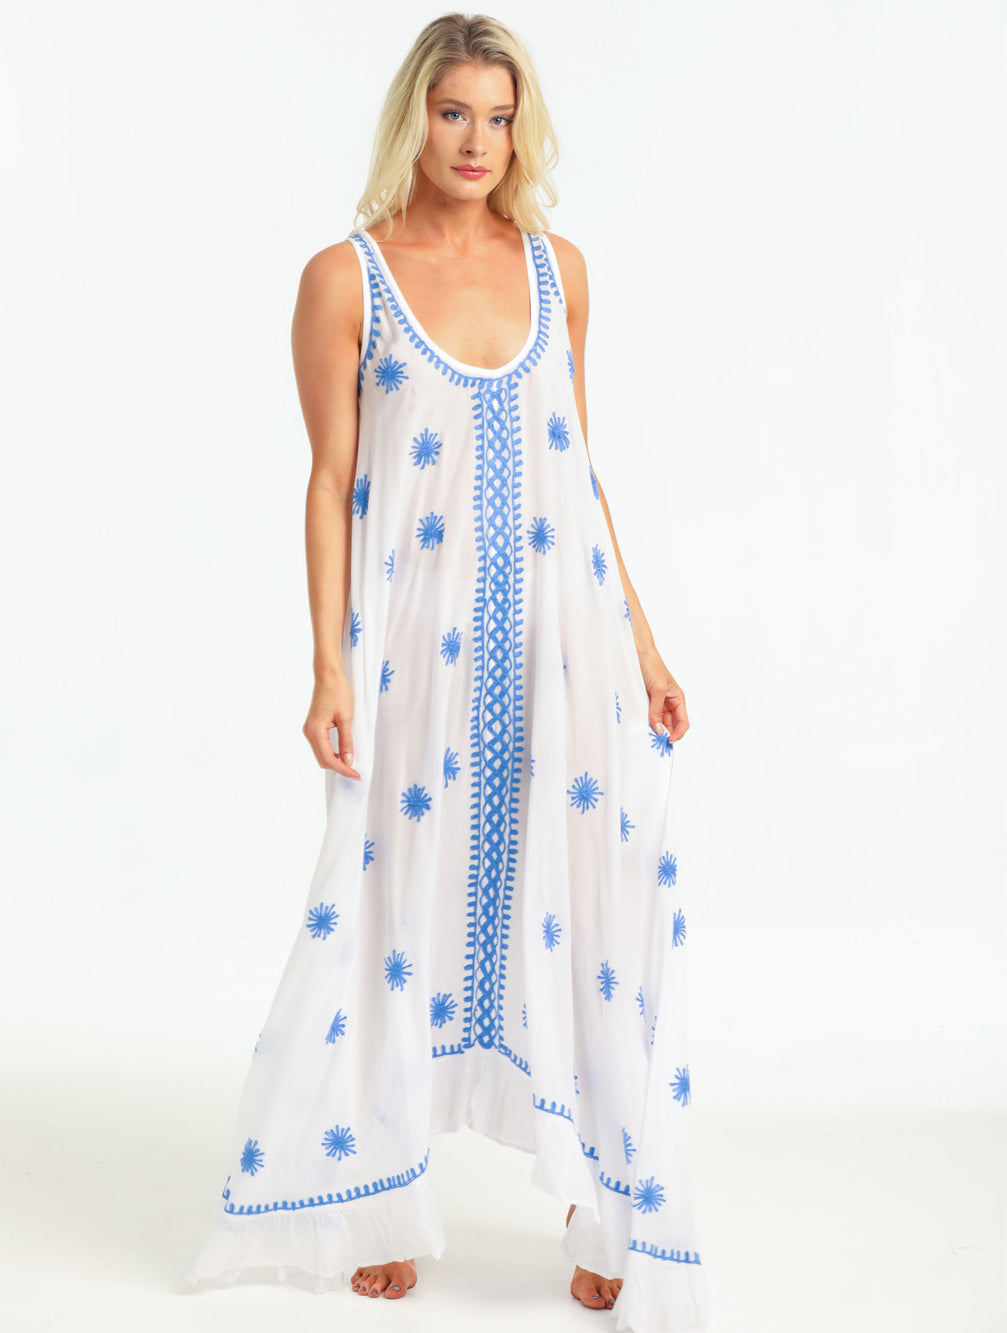 BEATRICE MAXI DRESS - Kaia London